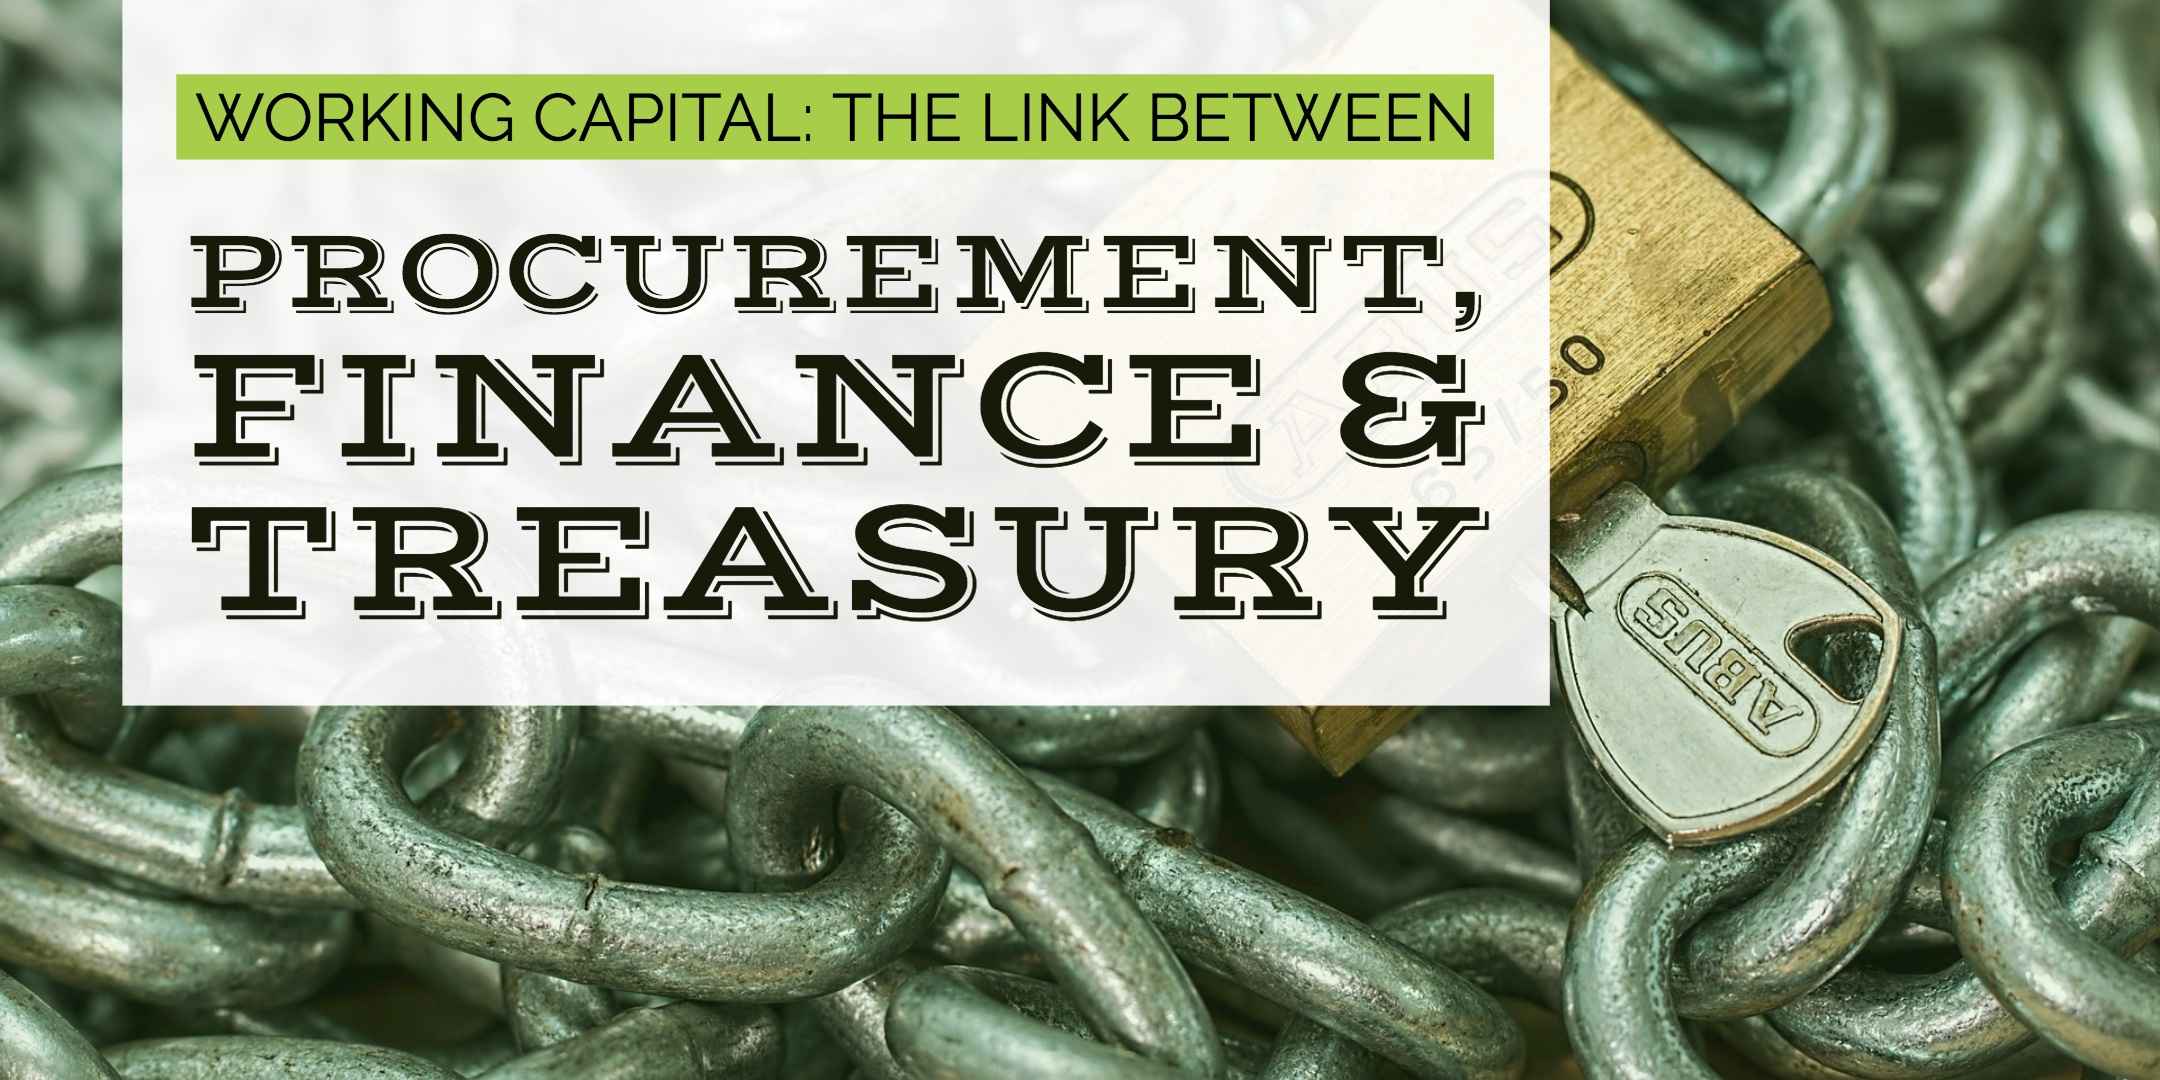 WORKING CAPITAL, THE LINK BETWEEN PROCUREMENT, FINANCE AND TREASURY